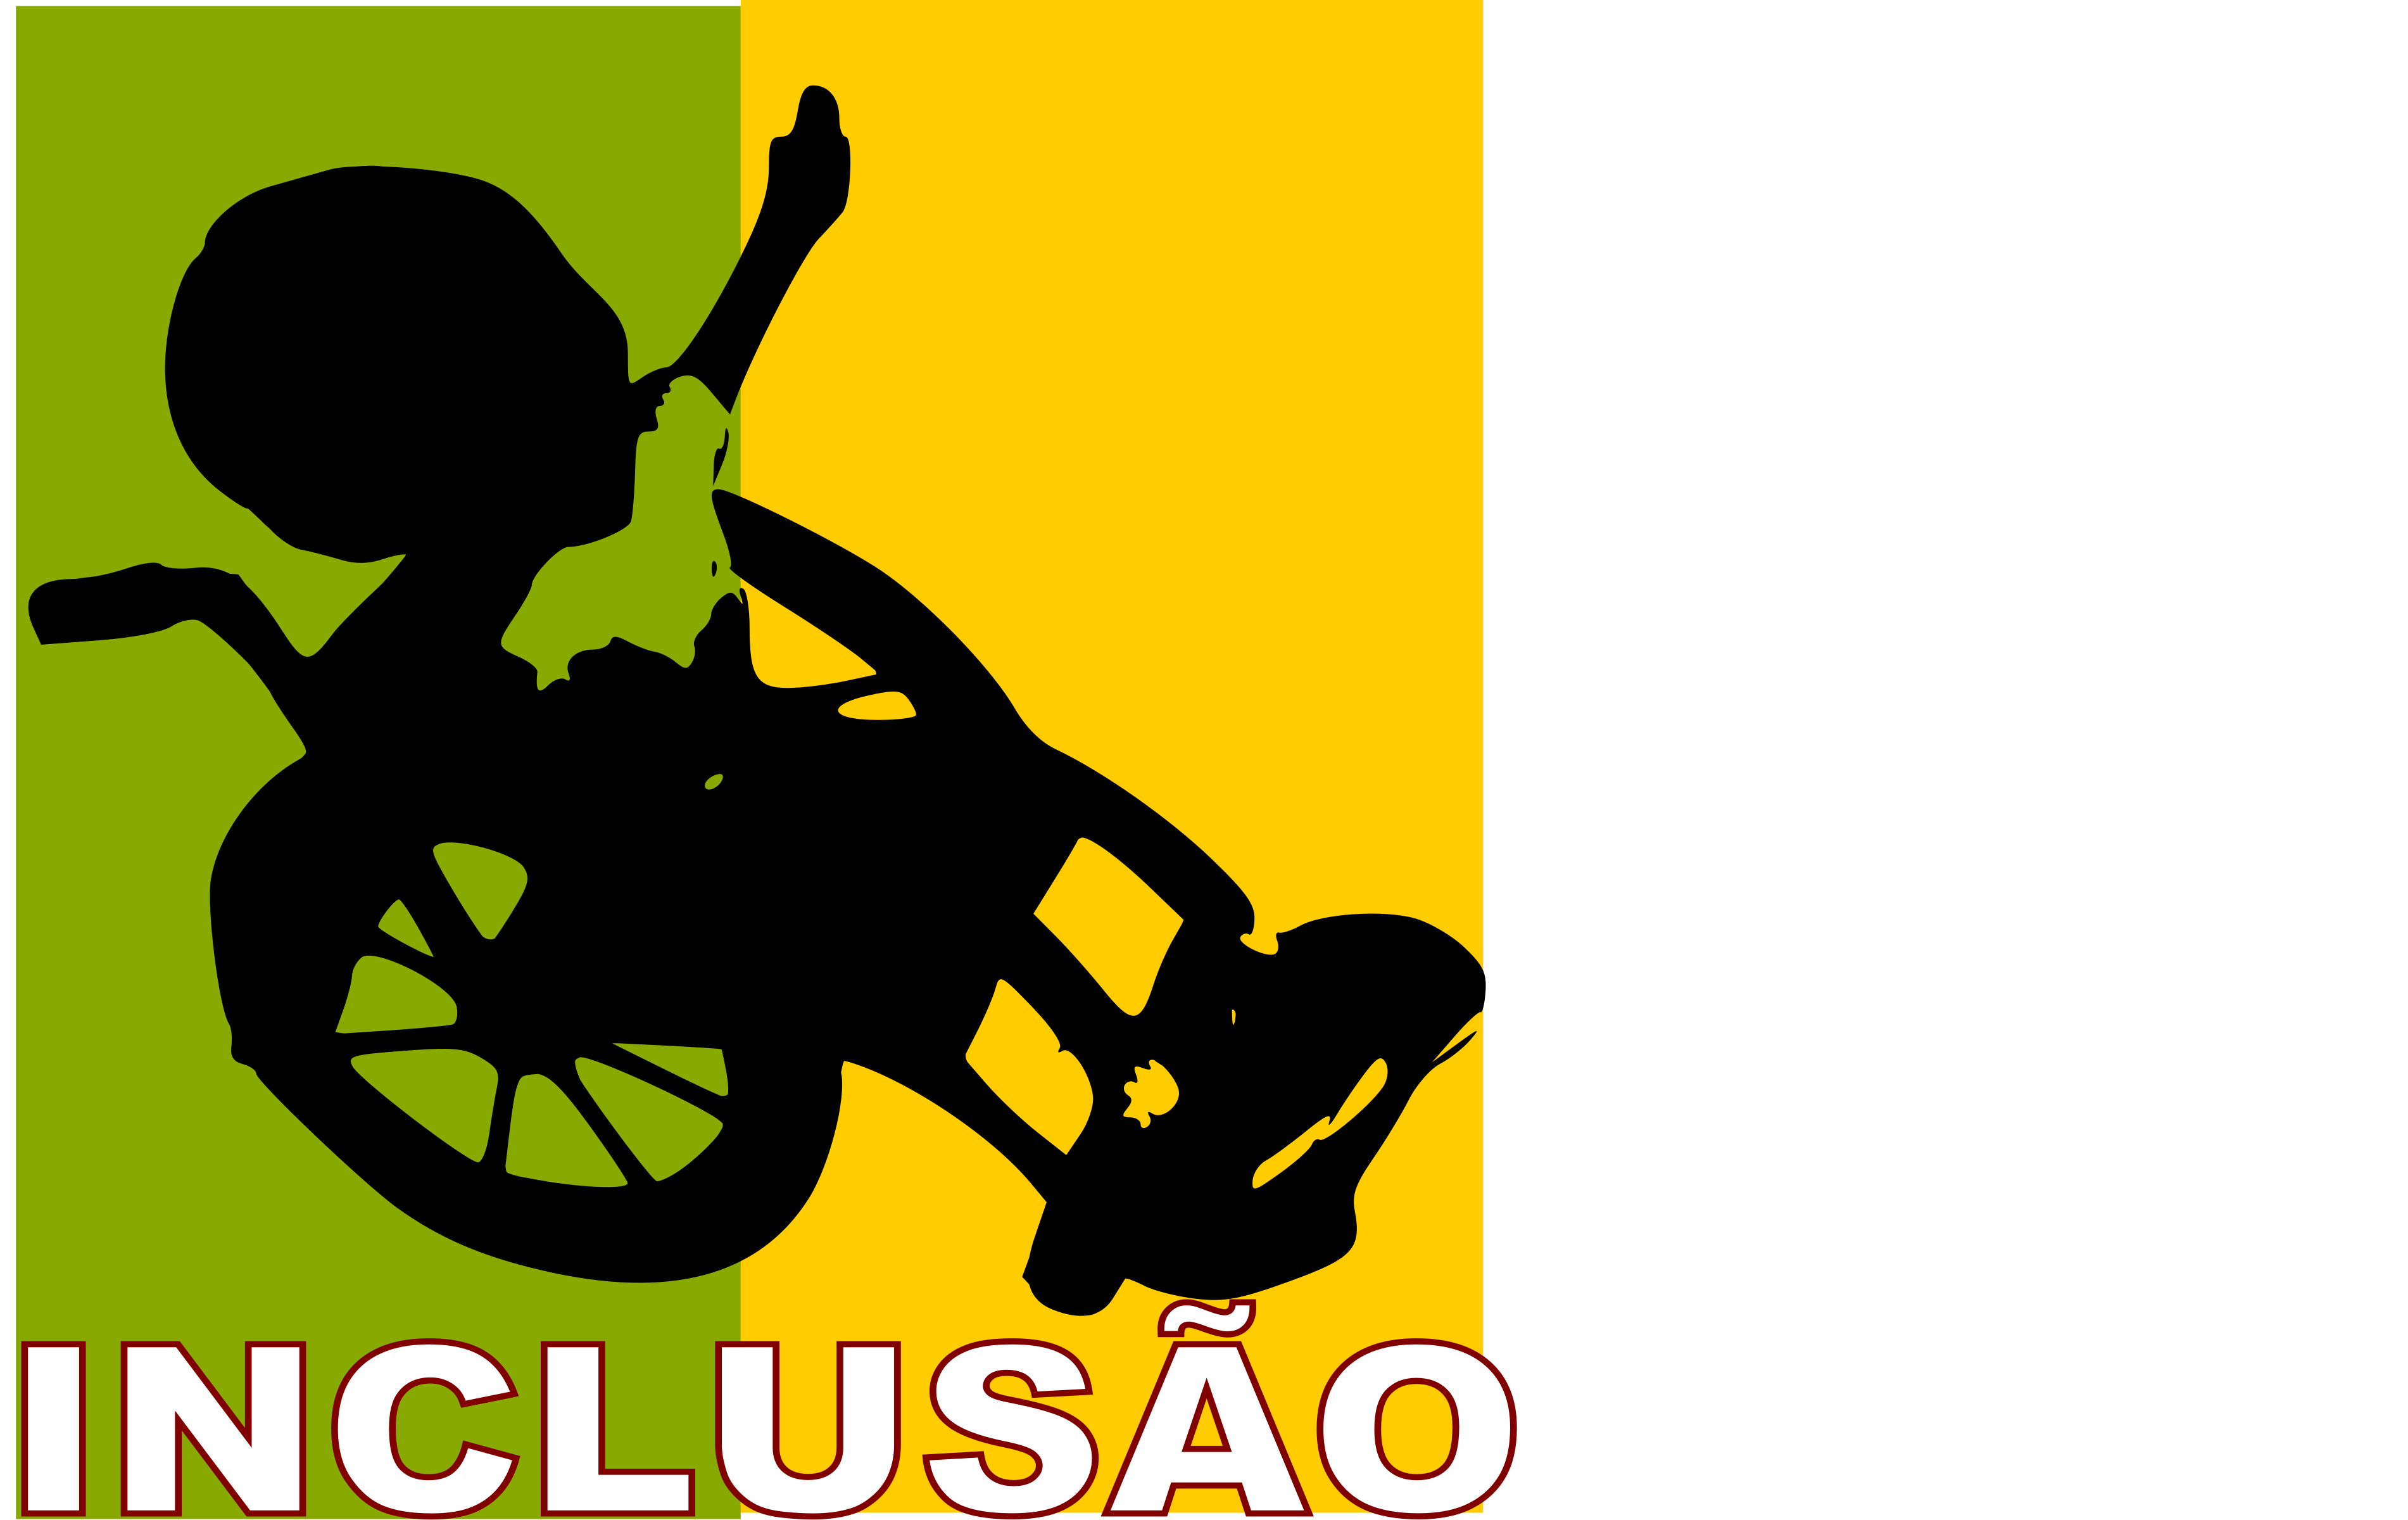 inclusao by KaMenezes